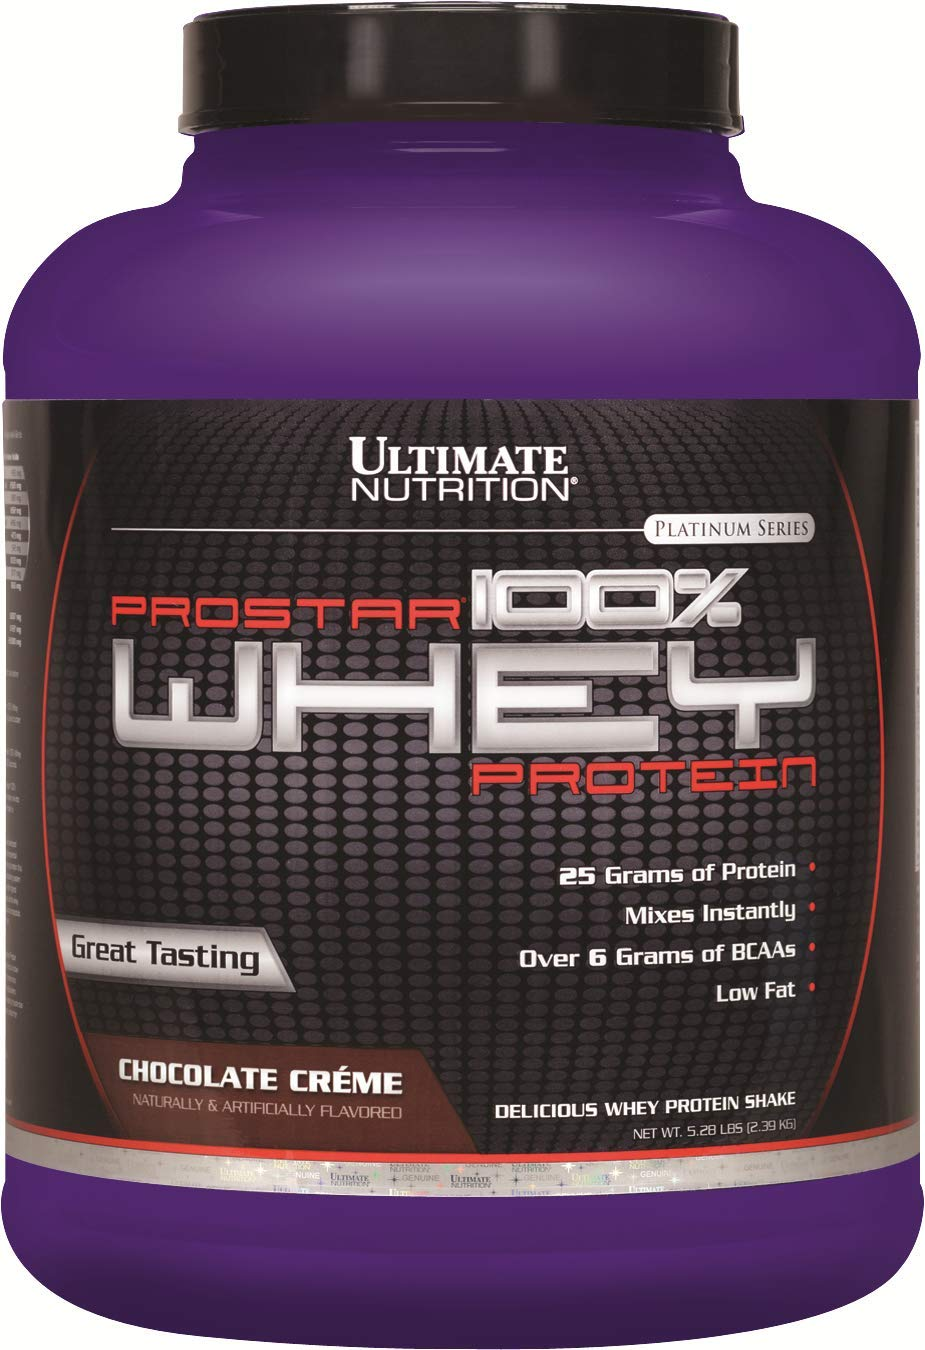 ultimate nutrition prostar,ultimate nutrition,protein,ultimate nutrition prostar 100 whey protein review,prostar 100% whey,ultimate nutrition prostar 100% whey protein,whey,prostar,prostar whey protein,ultimate nutrition prostar whey,ultimate nutrition prostar whey protein review by guru mann,prostar 100 whey protein review,100% whey protein,whey protein,ultimate nutrition prostar 100 whey protein results